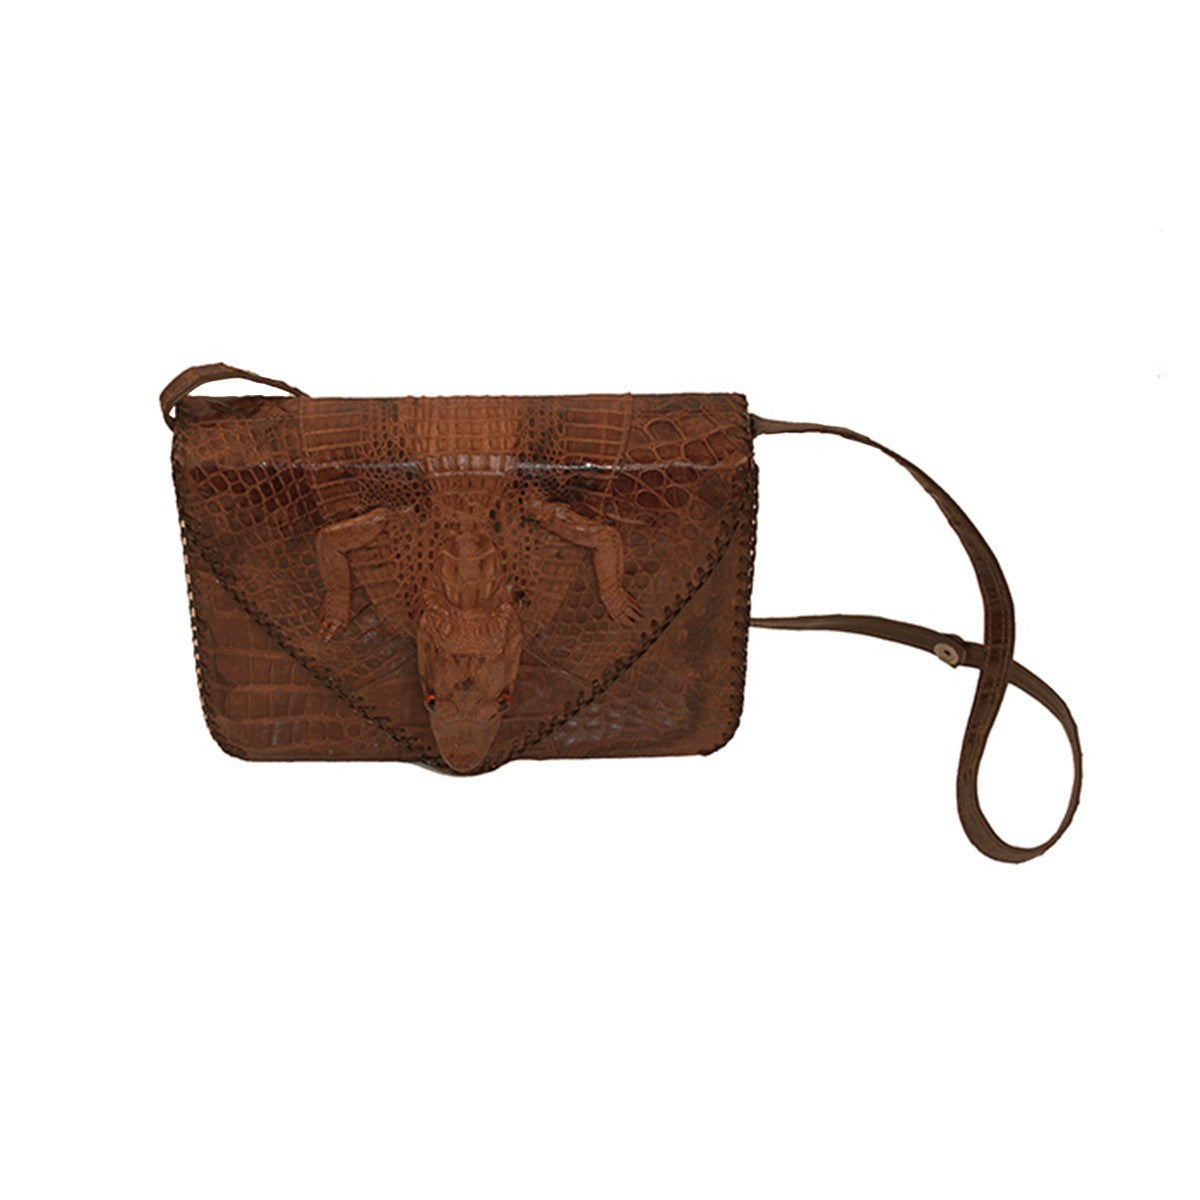 Alligante Alligator Shoulder Bag 2